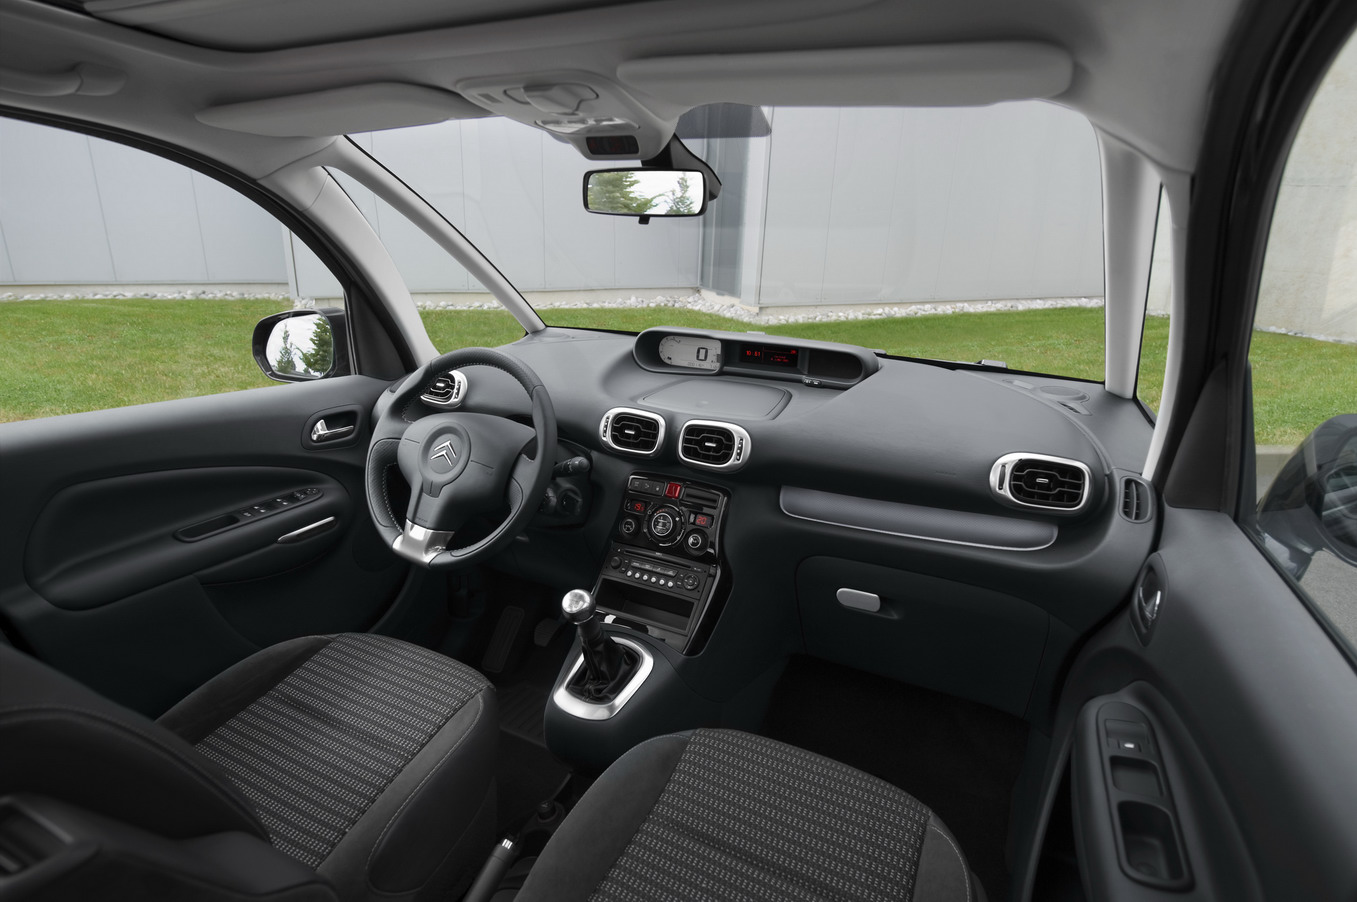 citroen c3 picasso mpv interior img 7 it s your auto world new cars auto news reviews. Black Bedroom Furniture Sets. Home Design Ideas